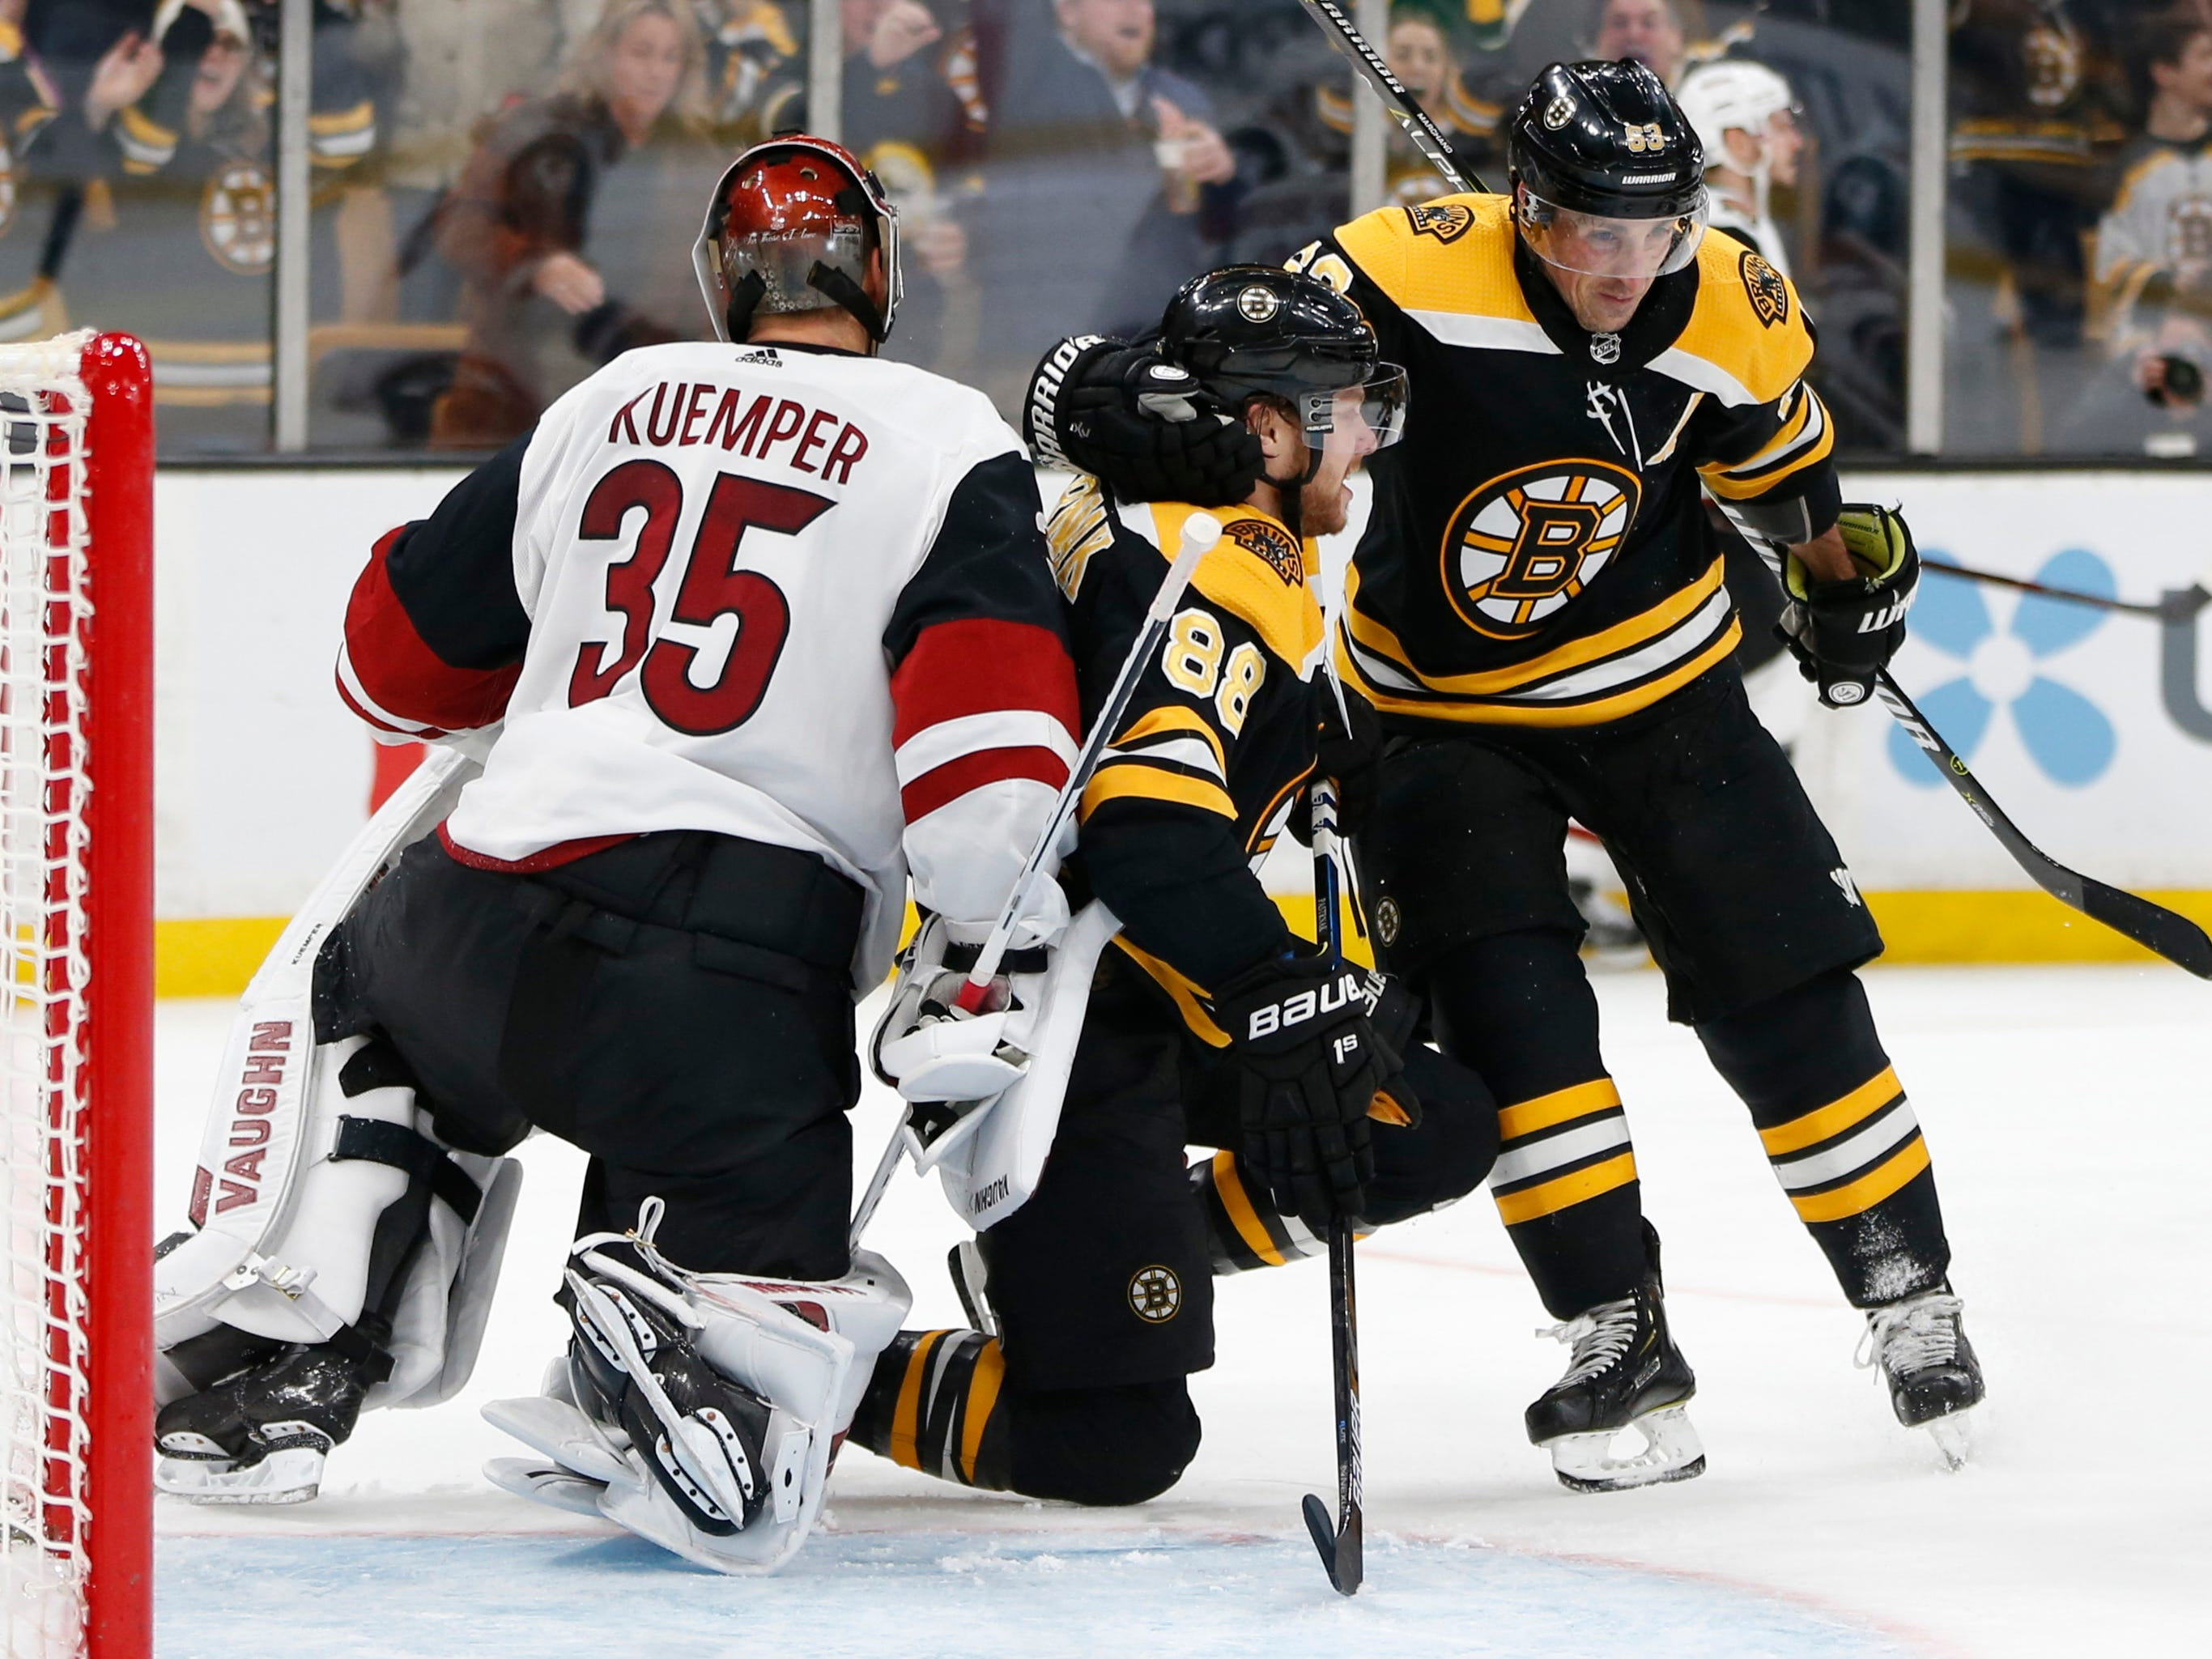 Dec 11, 2018; Boston, MA, USA; Boston Bruins left wing Brad Marchand (63) congratulates right wing David Pastrnak (88) after he scored a goal on Arizona Coyotes goaltender Darcy Kuemper (35) during the second period at TD Garden. Mandatory Credit: Greg M. Cooper-USA TODAY Sports